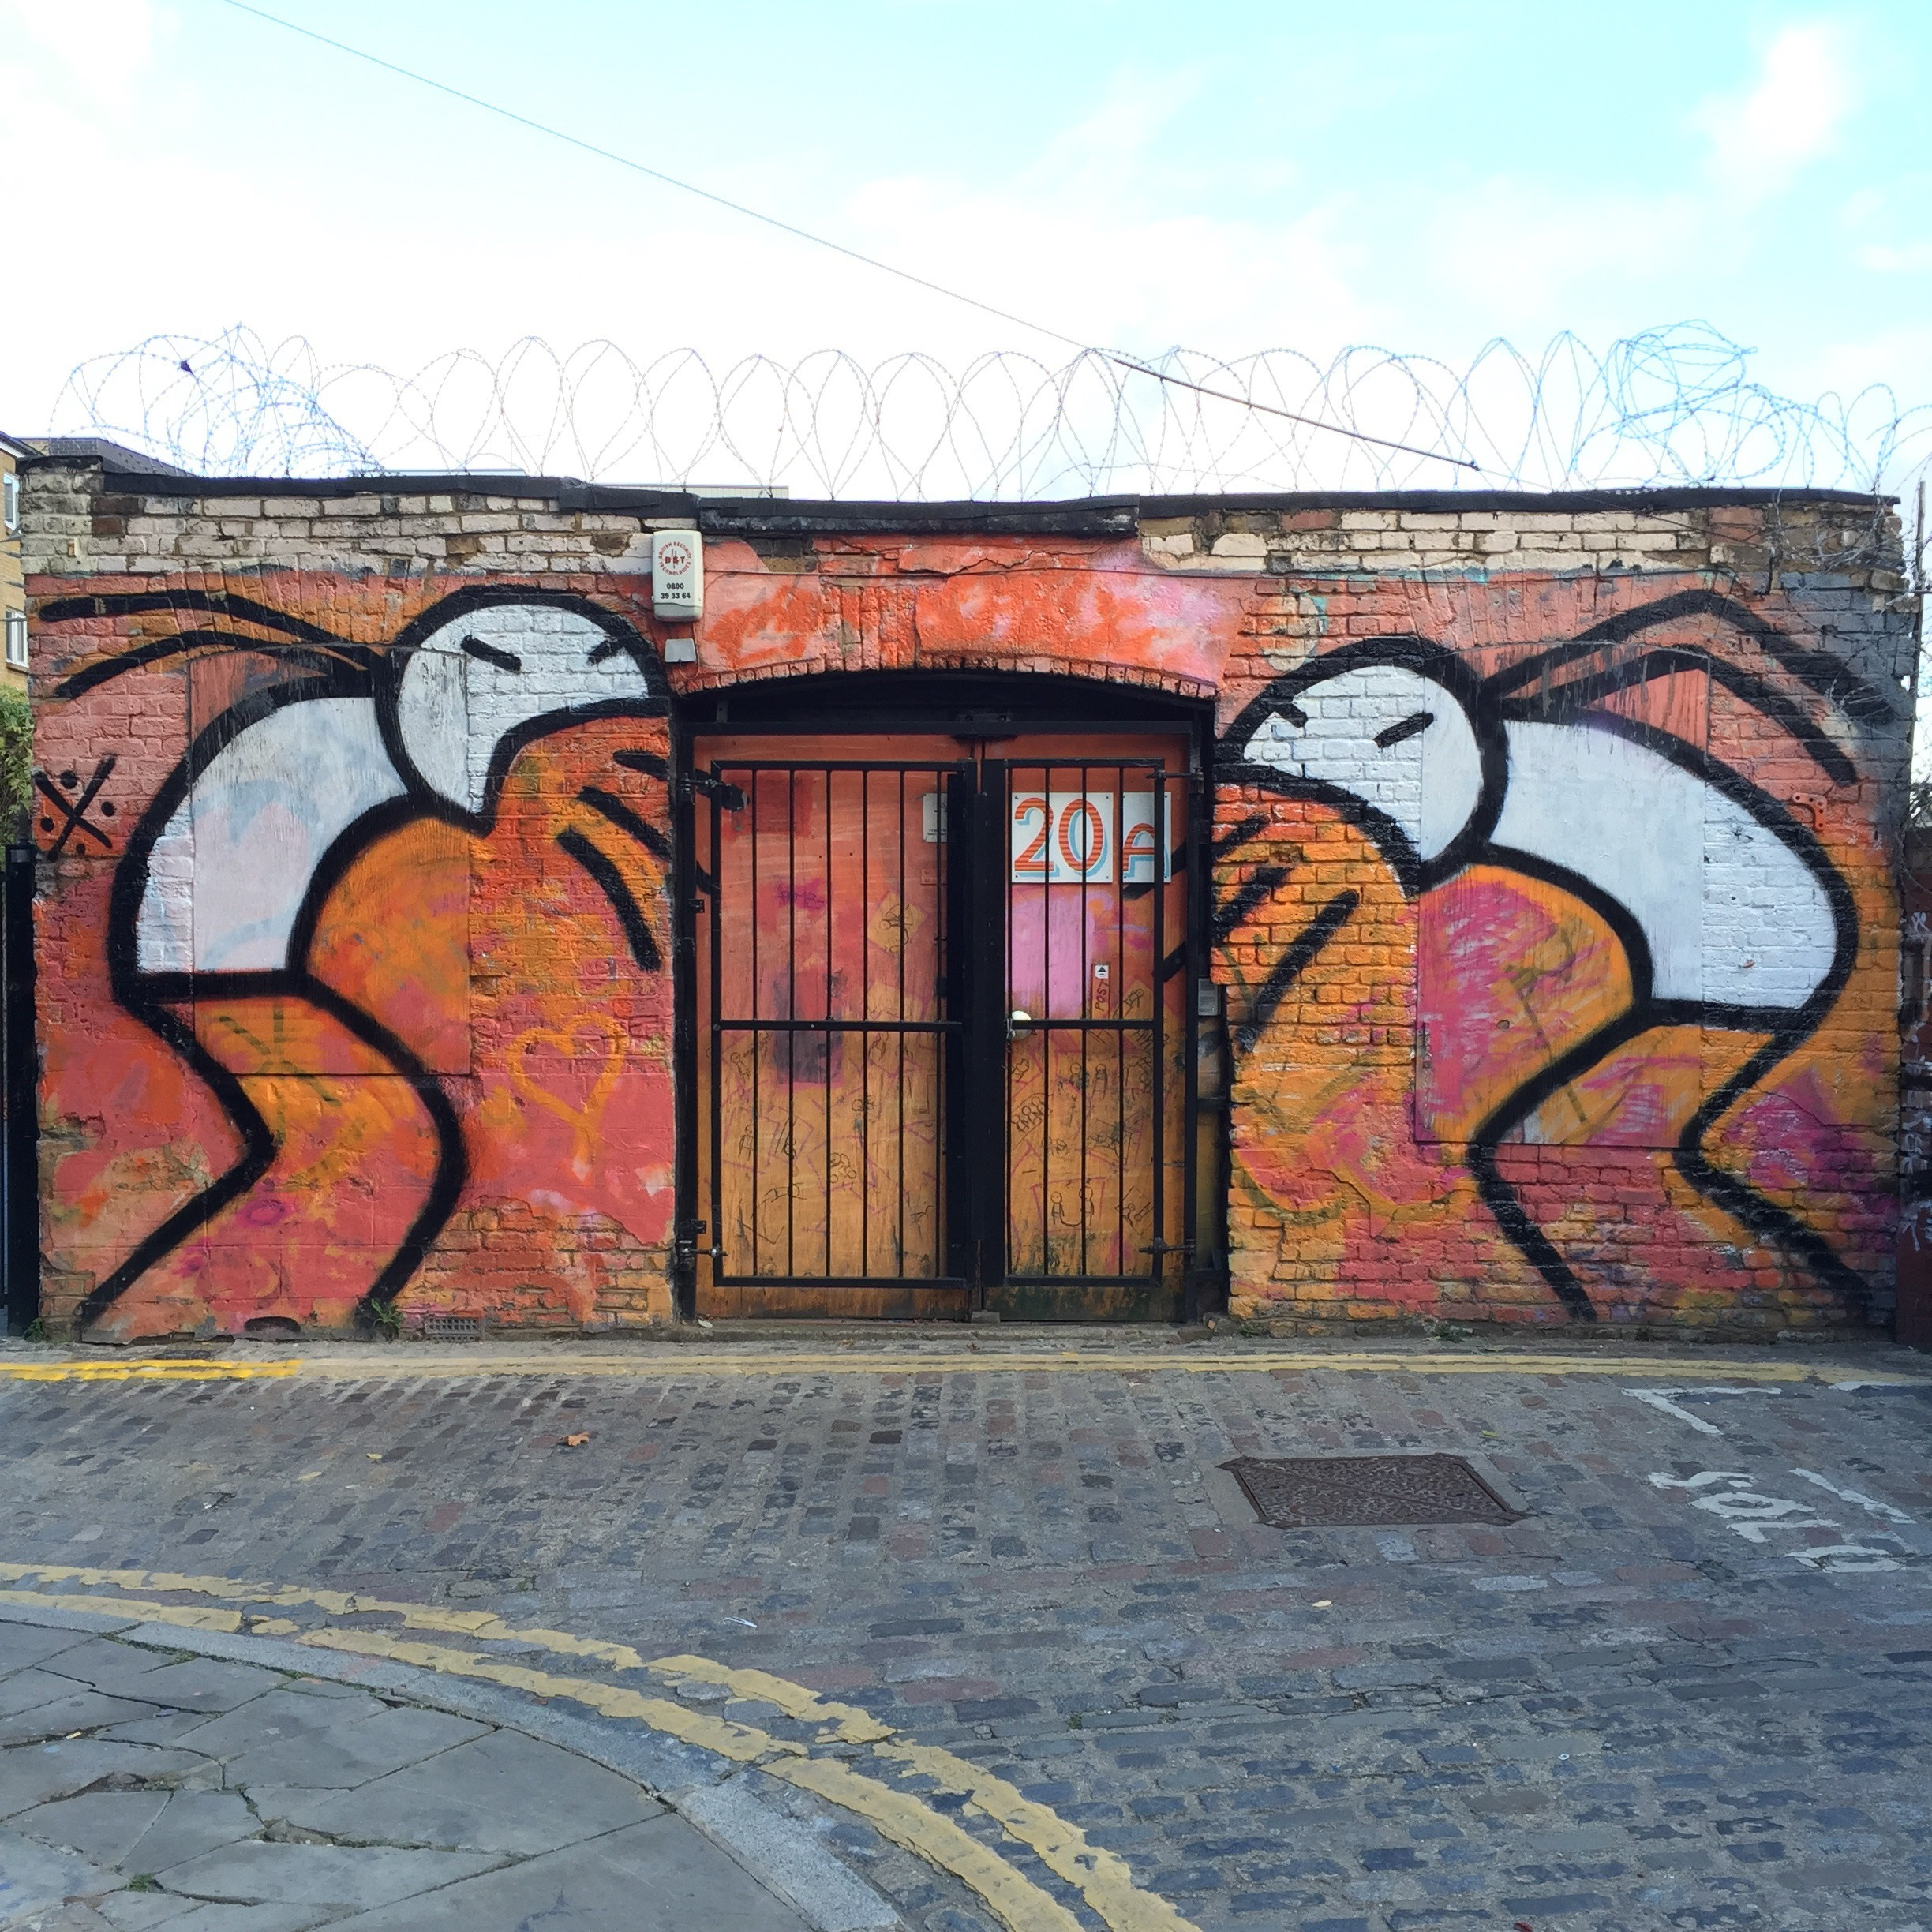 Photographed by Reem Gallery in autumn 2016. Mural is in Grimsby Street, off Brick Lane, London.